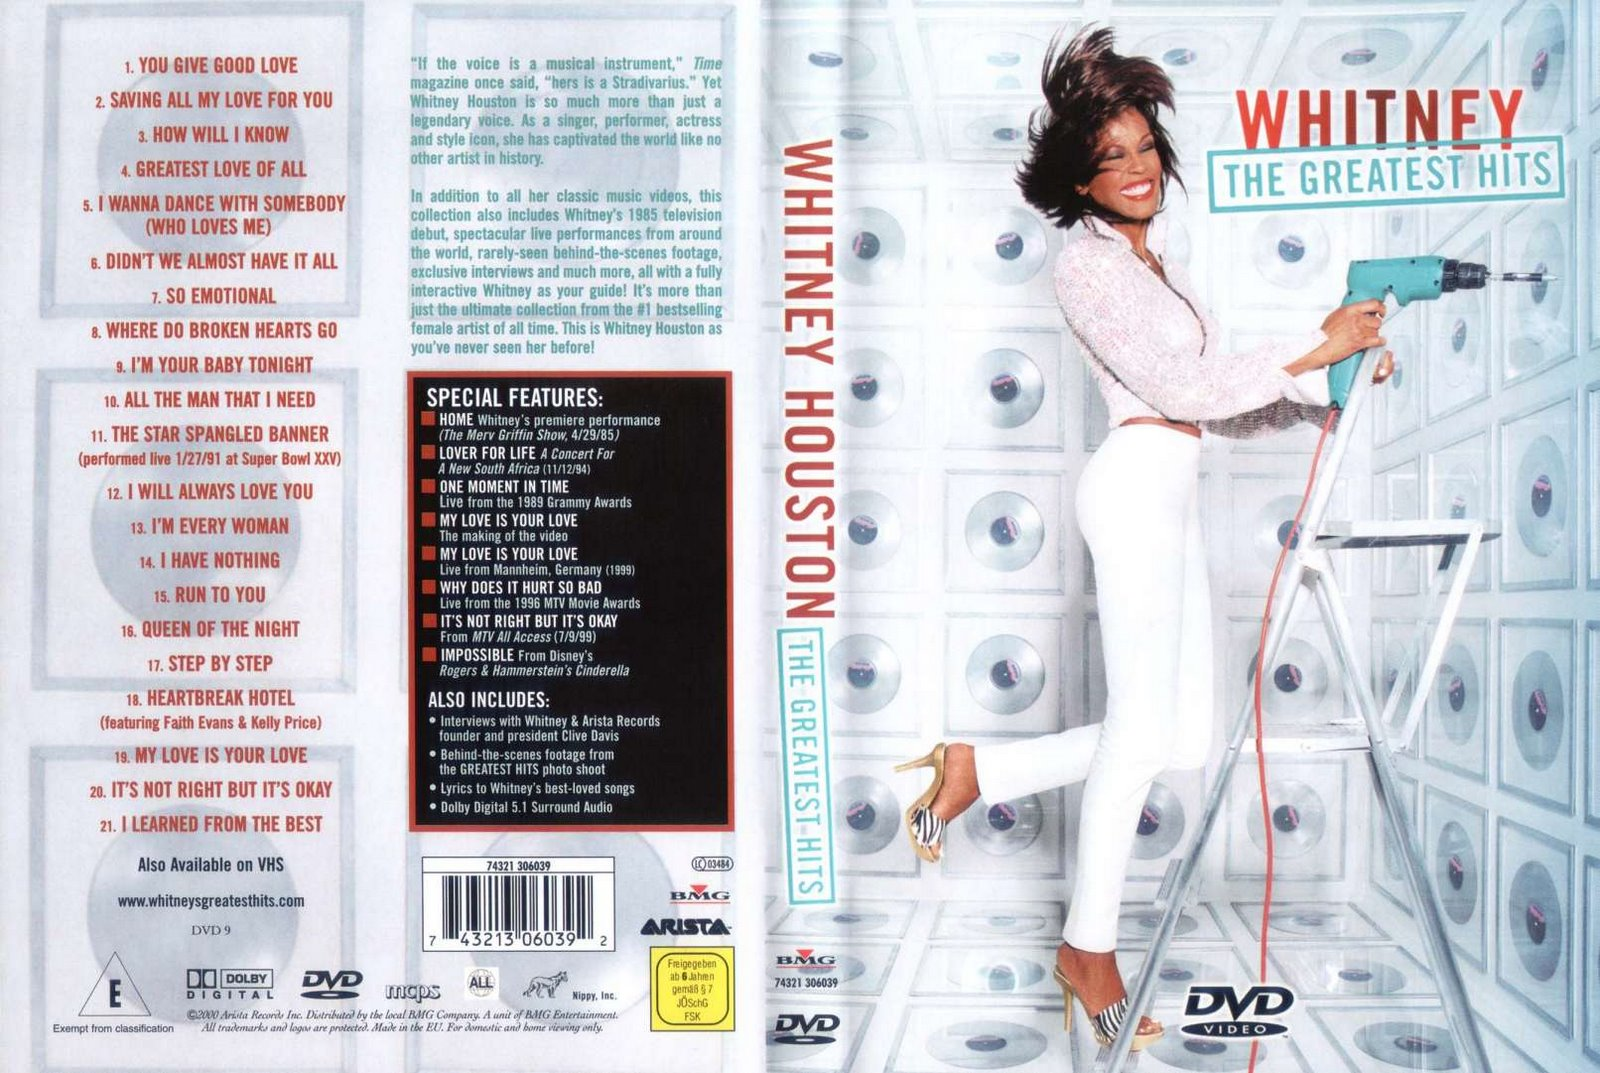 http://3.bp.blogspot.com/_brcl7Spzbn4/S_ExaHaHF8I/AAAAAAAAAYI/Z5zNxII06HI/s1600/Whitney+Houston+-+The+Greatest+Hits+-+Cover.jpg